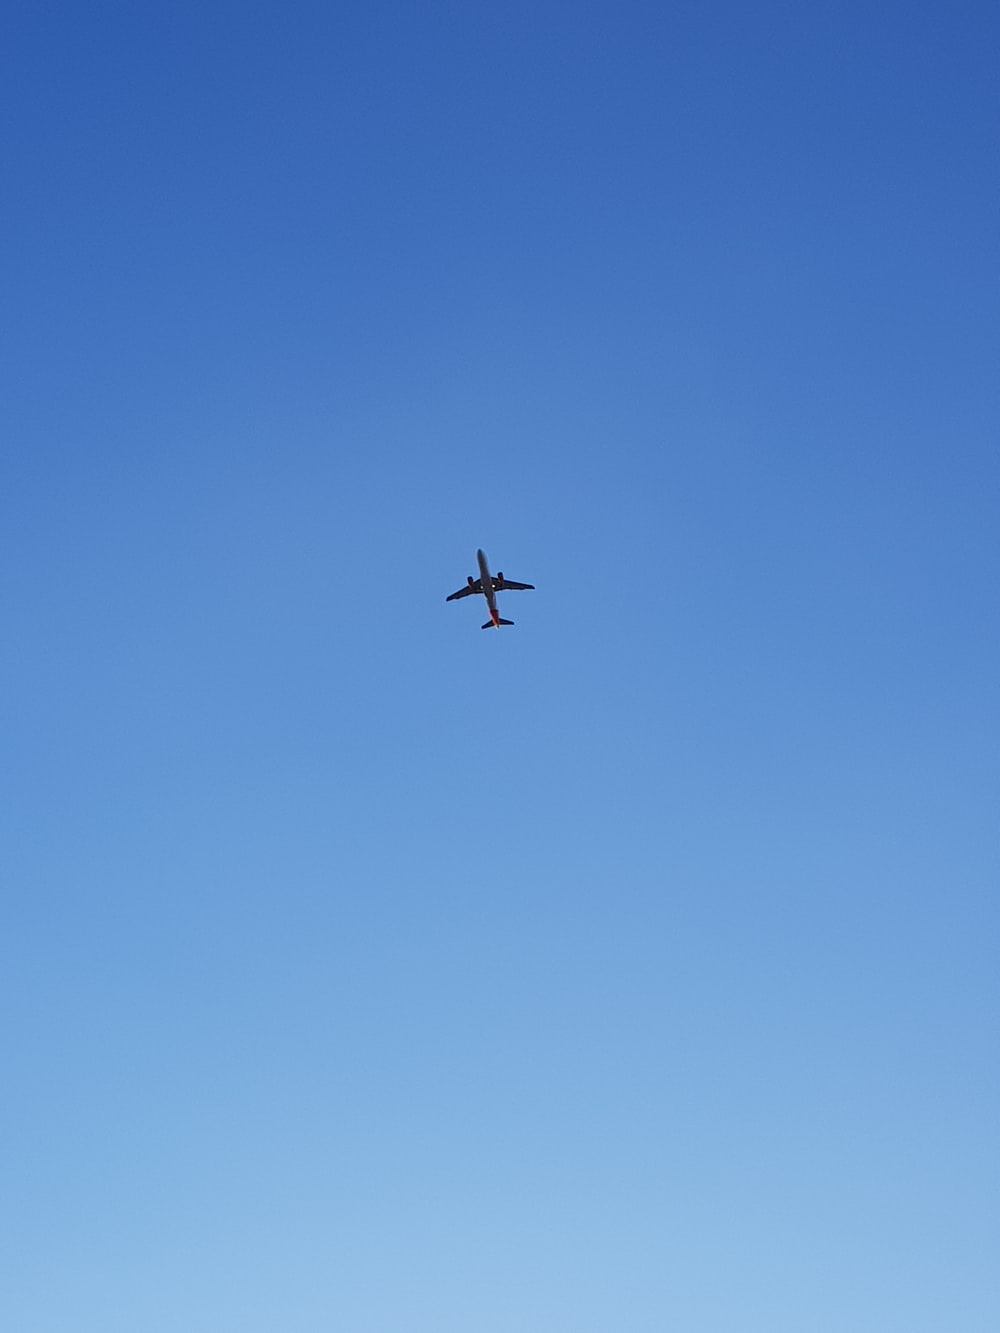 low-angle photography of an airplane in the sky